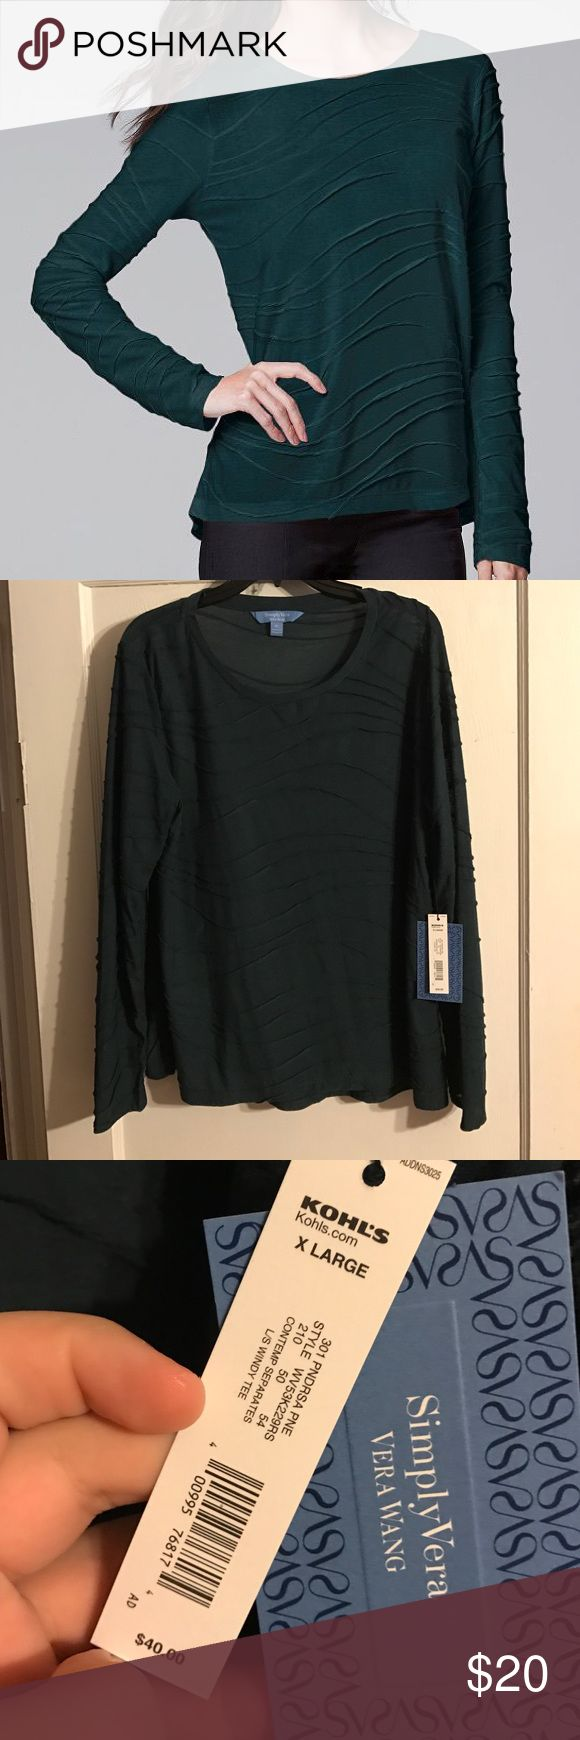 Simply Vera Vera Wang Windy Jacquard Tee NWT size XL. Simply Vera Vera Wang Windy Jacquard Tee in green. I would say it's a little thin. Very pretty for work! Let me know if you have any questions 🙂 Simply Vera Vera Wang Tops